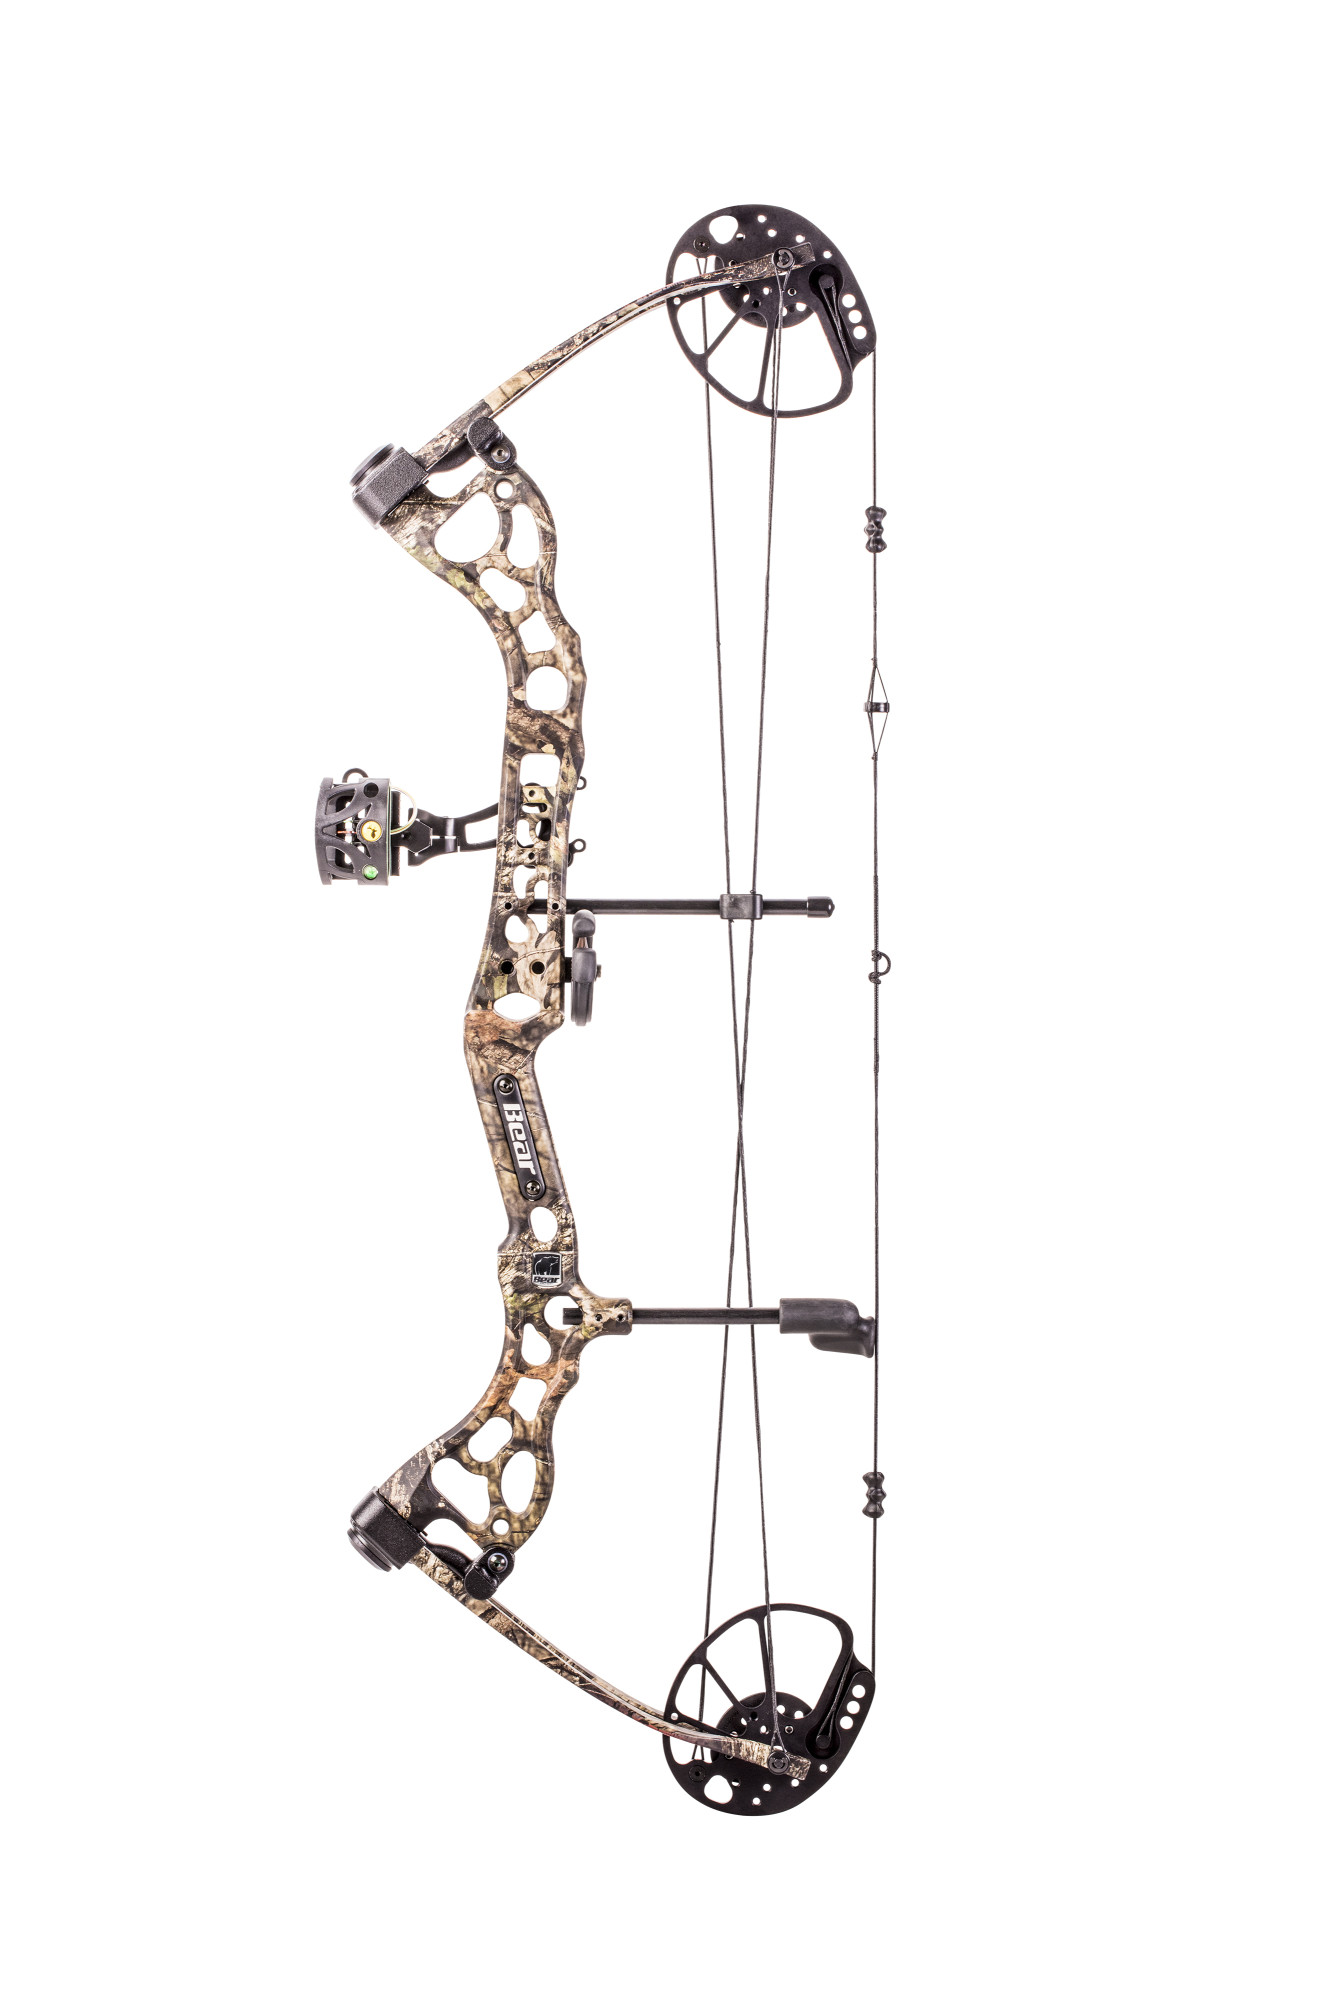 Bear Archery Pledge Compound Bow Includes Trophy Ridge Mist 3-Pin Sight and  Whisker Biscuit arrow rest